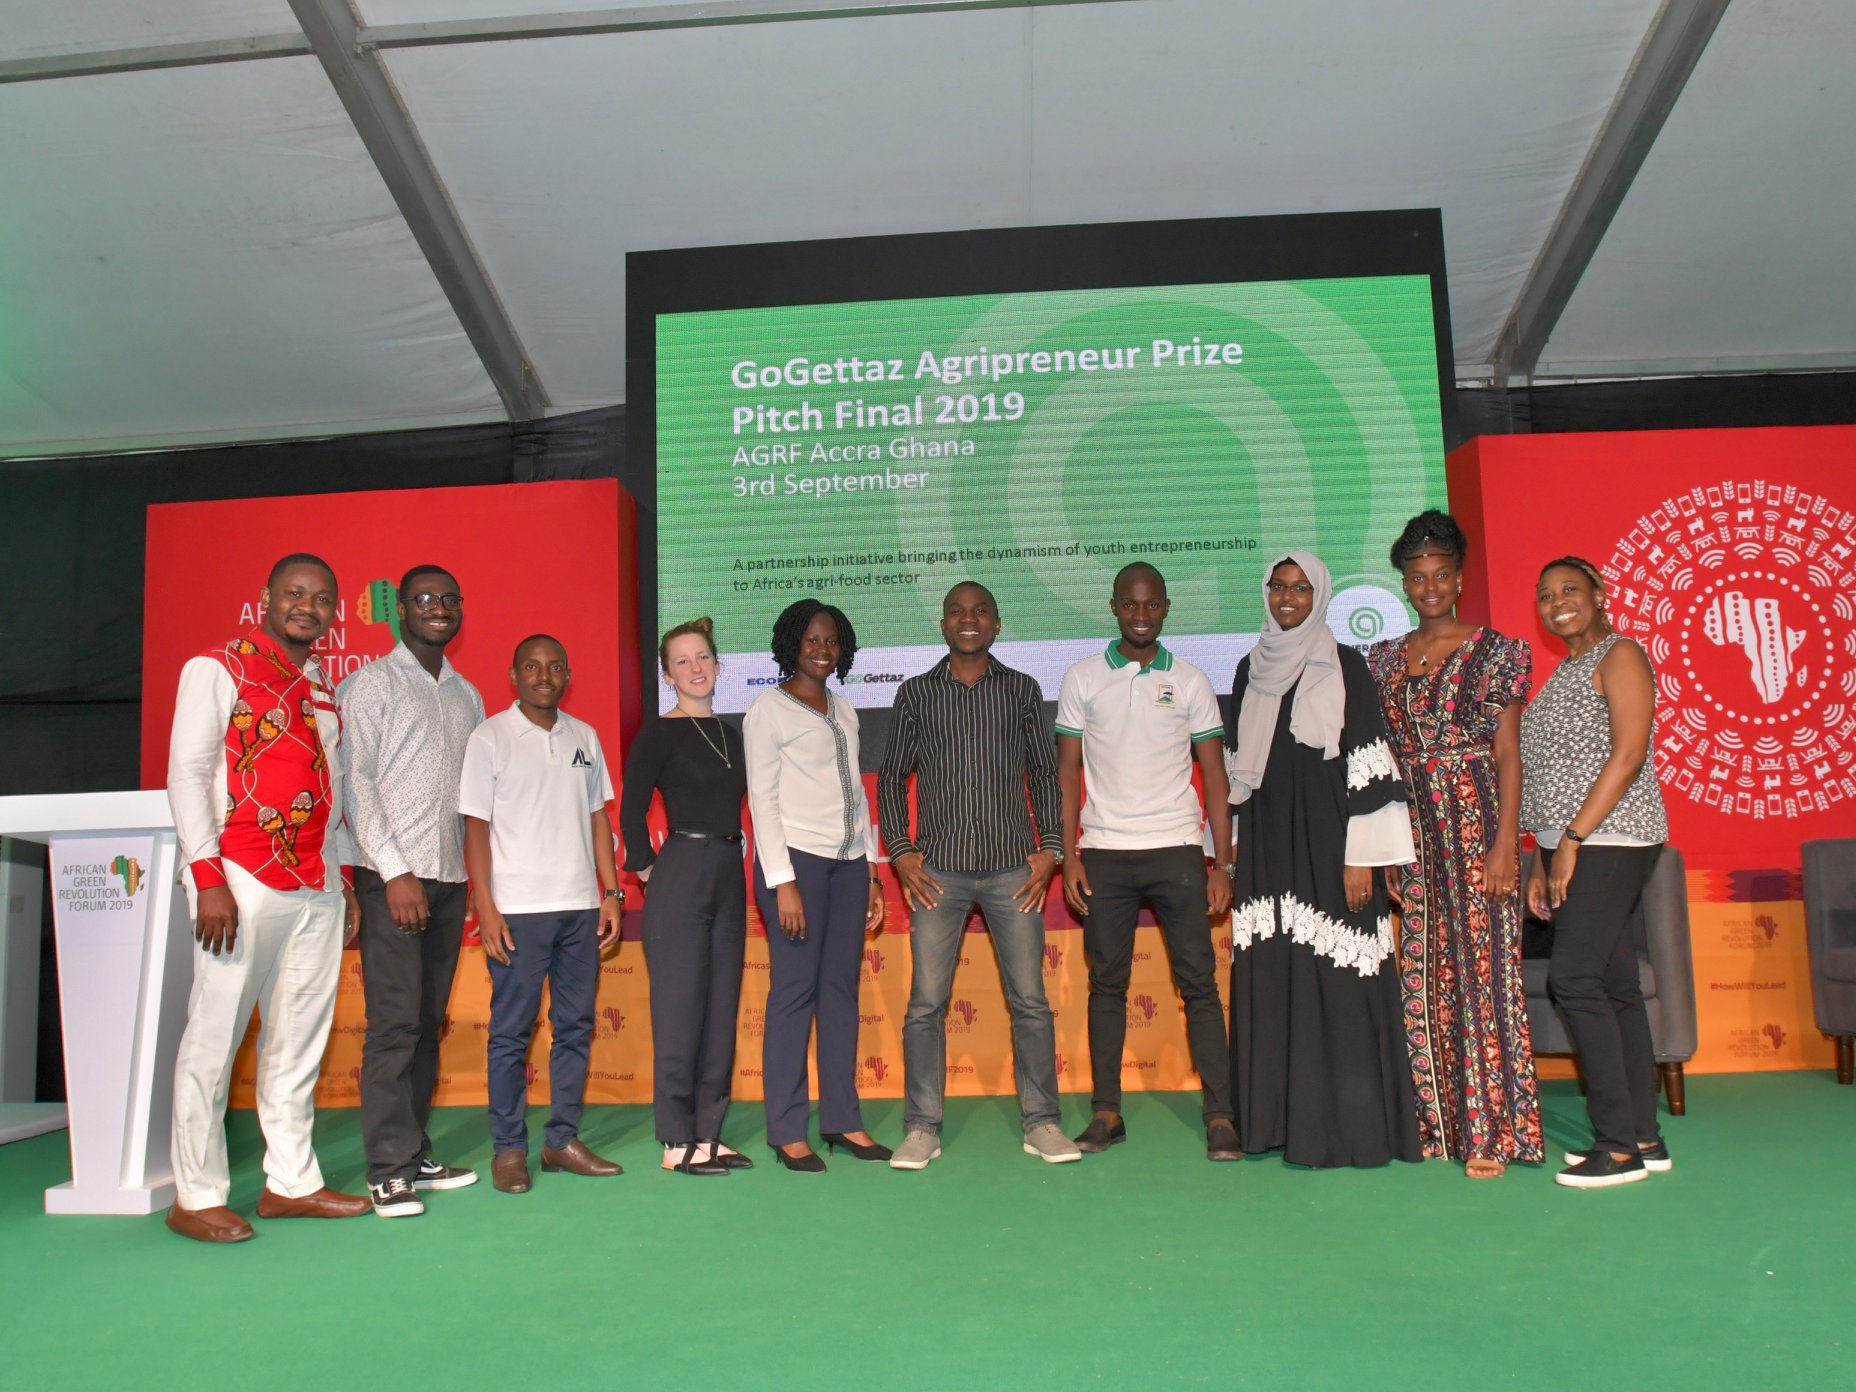 Press Release: 12 Young Entrepreneurs Vie To Win Prestigious $100,000 GoGettaz Agripreneur Prize - Generation Africa